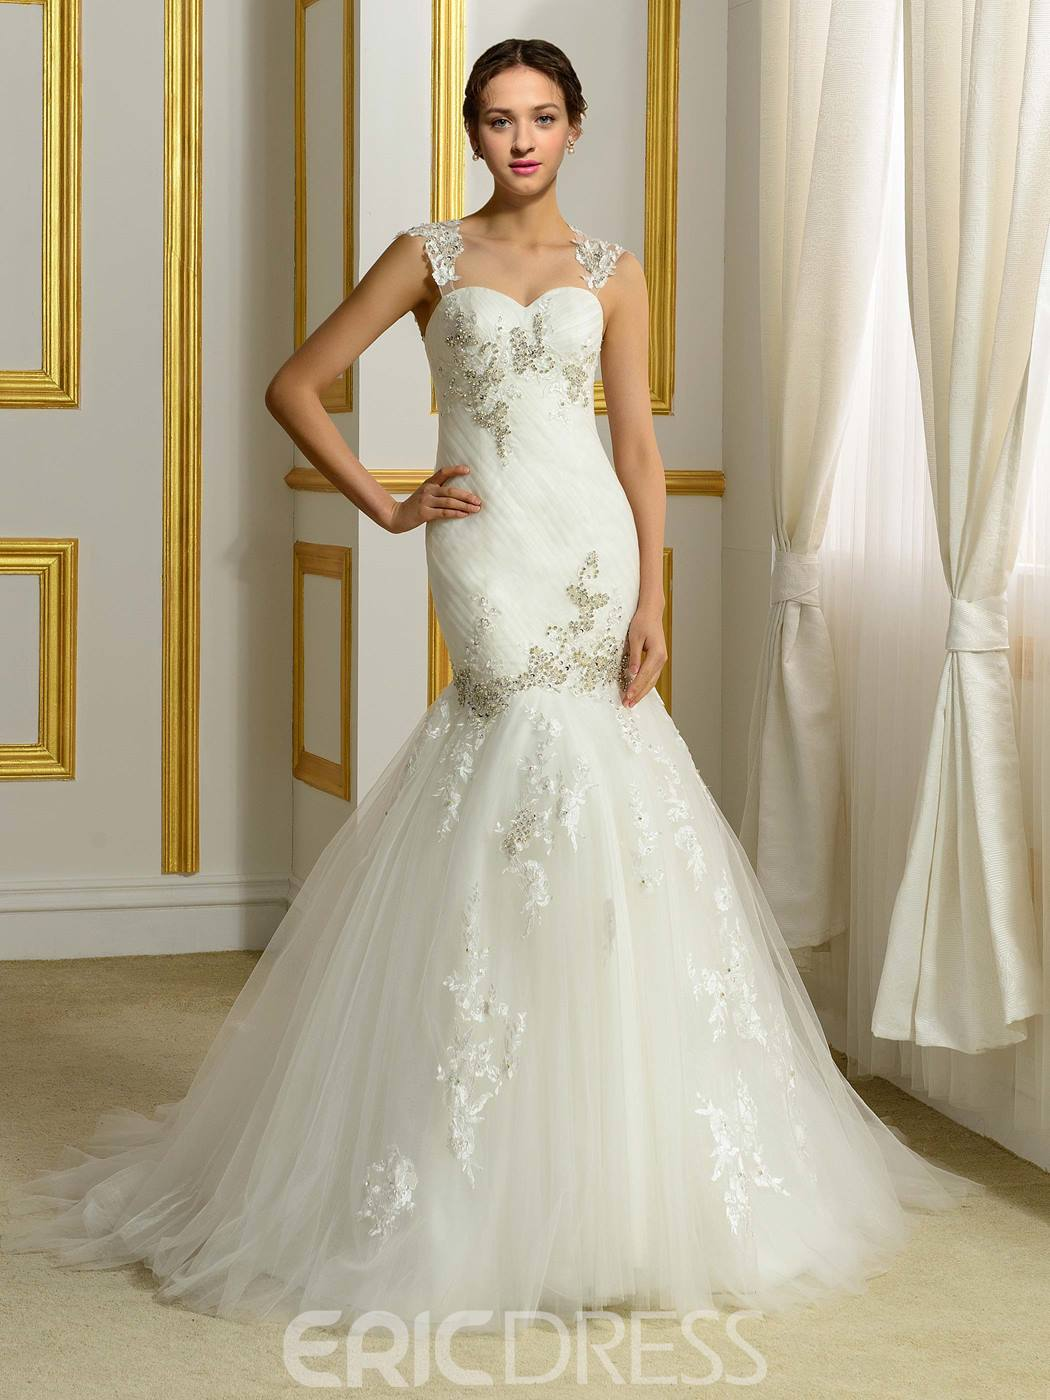 Ericdress Exquisite Beading Mermaid Wedding Dress